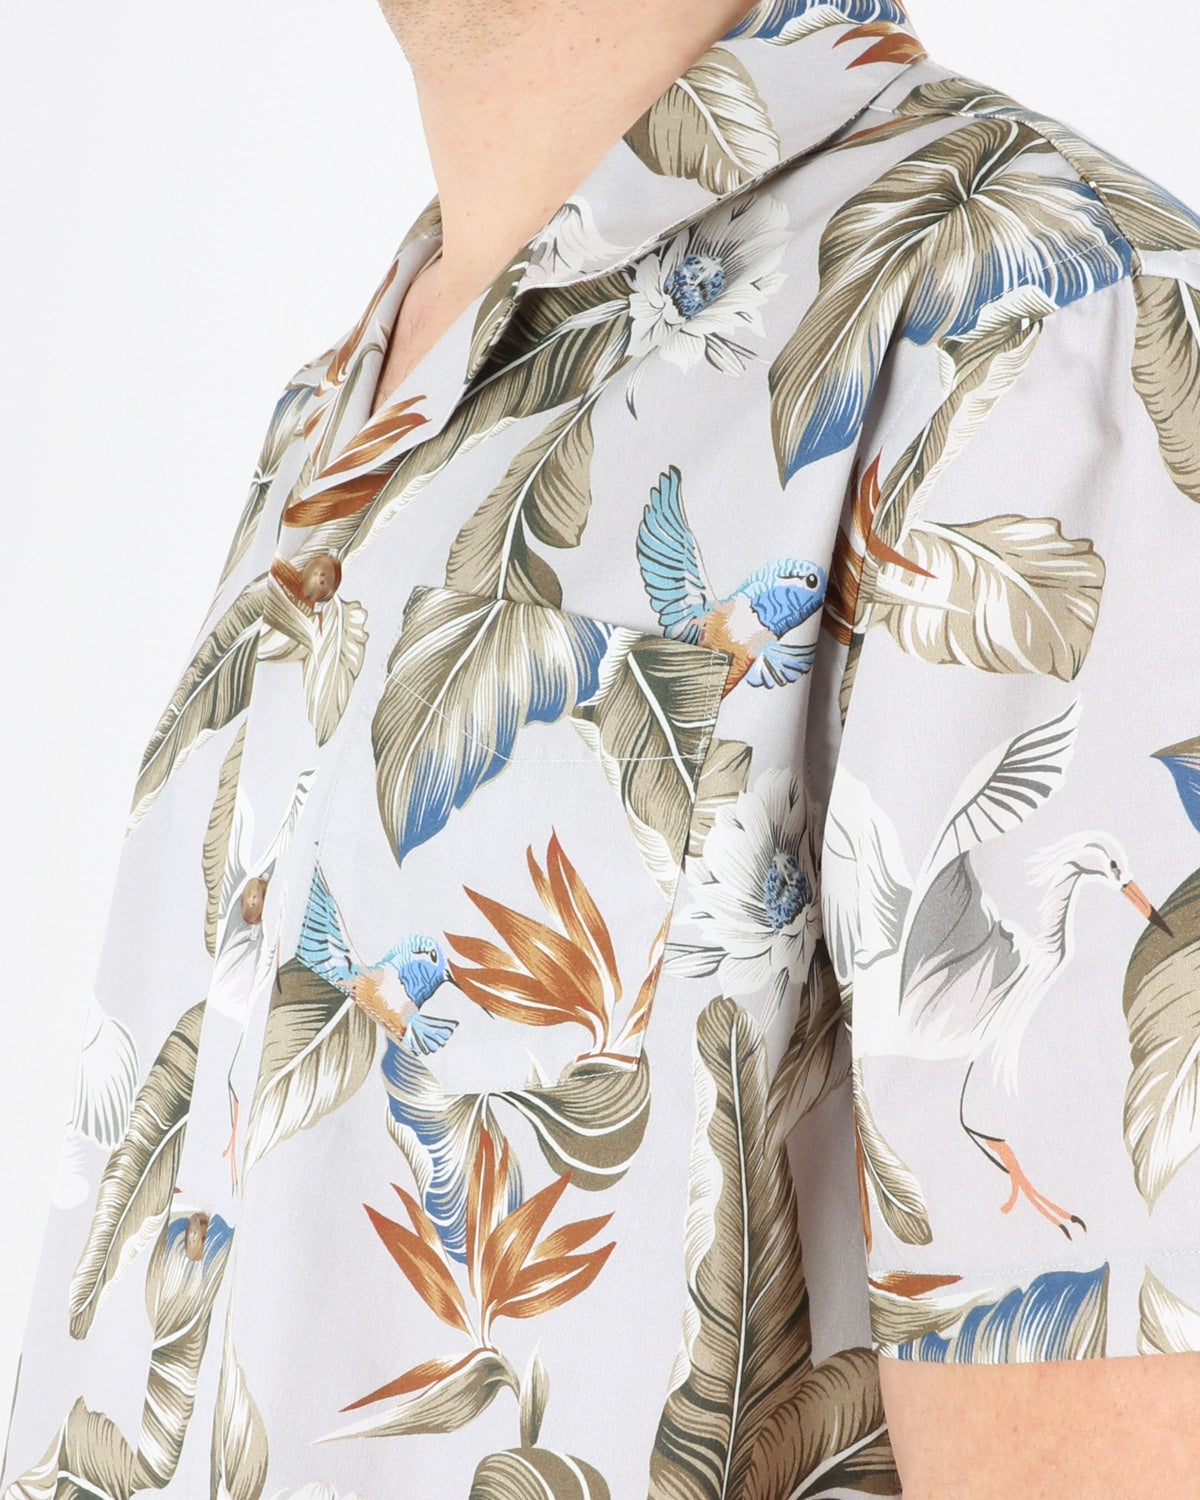 libertine libertine_cave shirt_dusty flower_3_4